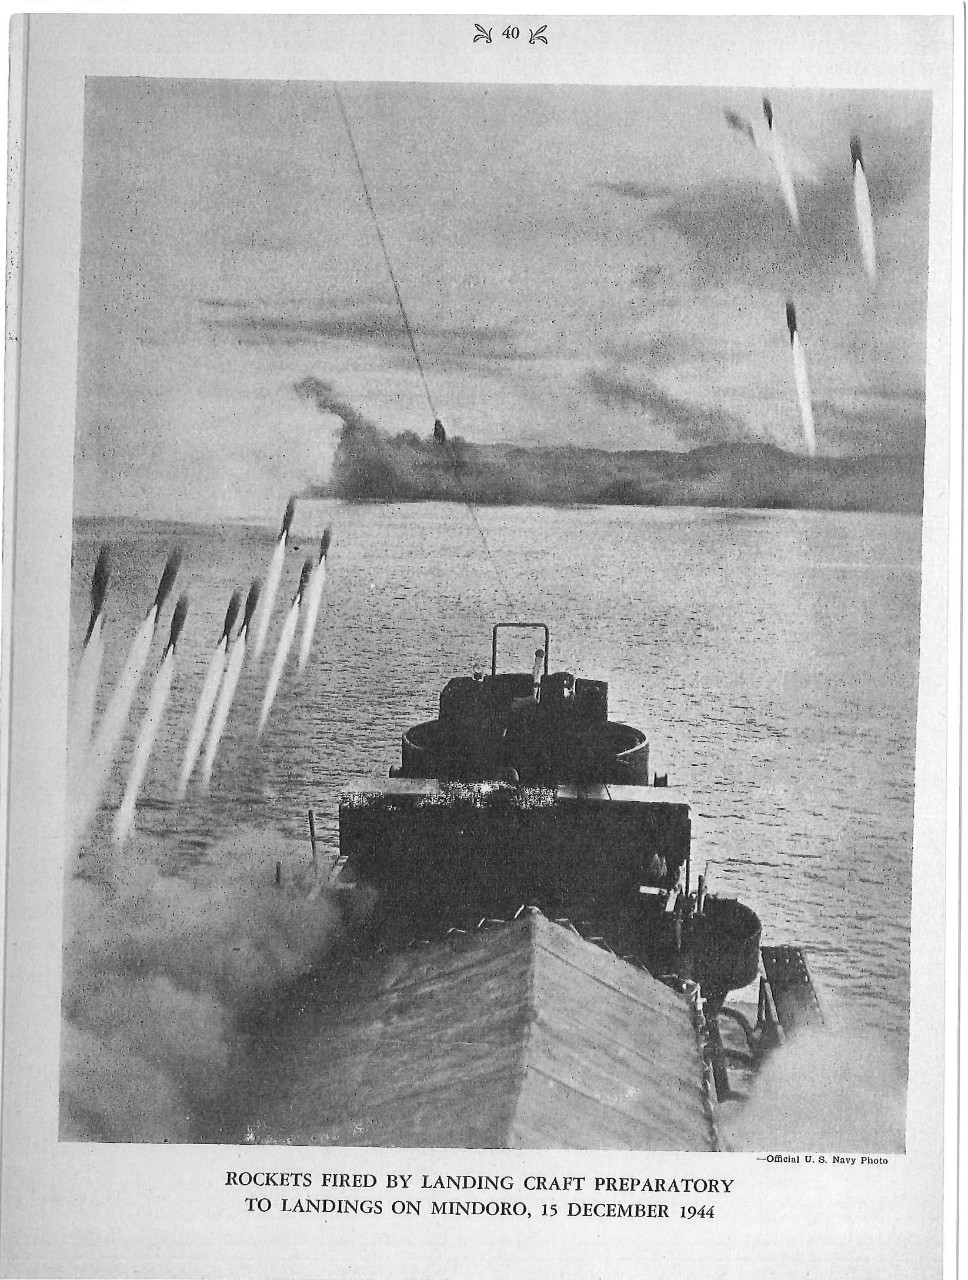 Rockets fired by landing craft preparatory to landing on Mindoro, 15 December